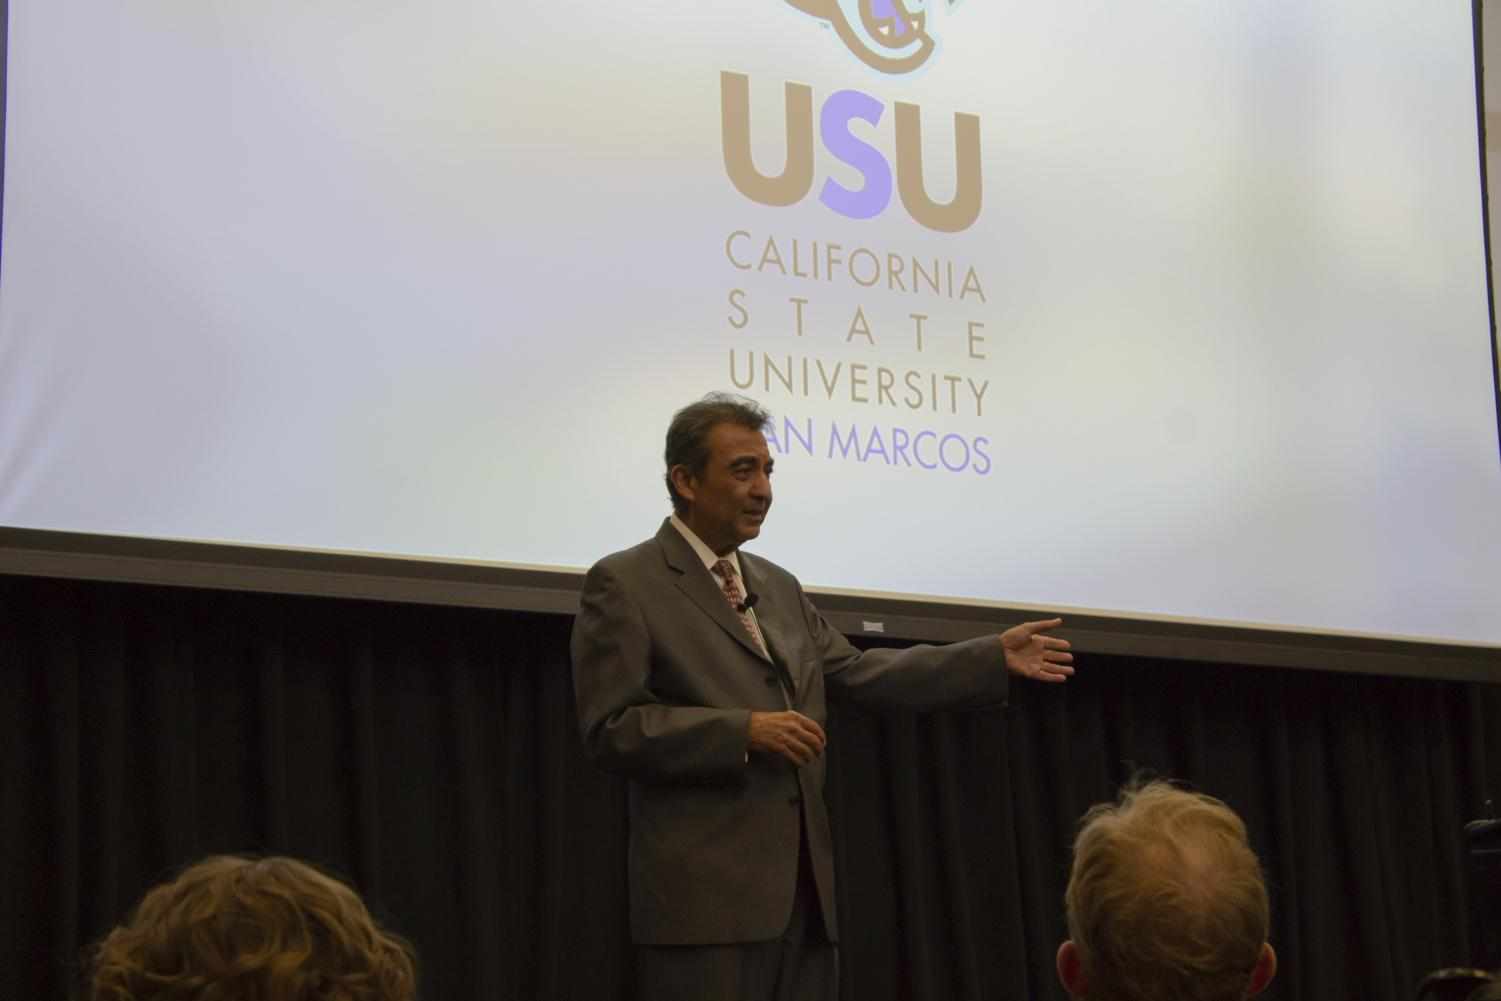 Award winning author and peace activist Azim Khamisa speaks to audience members at the USU ballroom on Sept. 27.